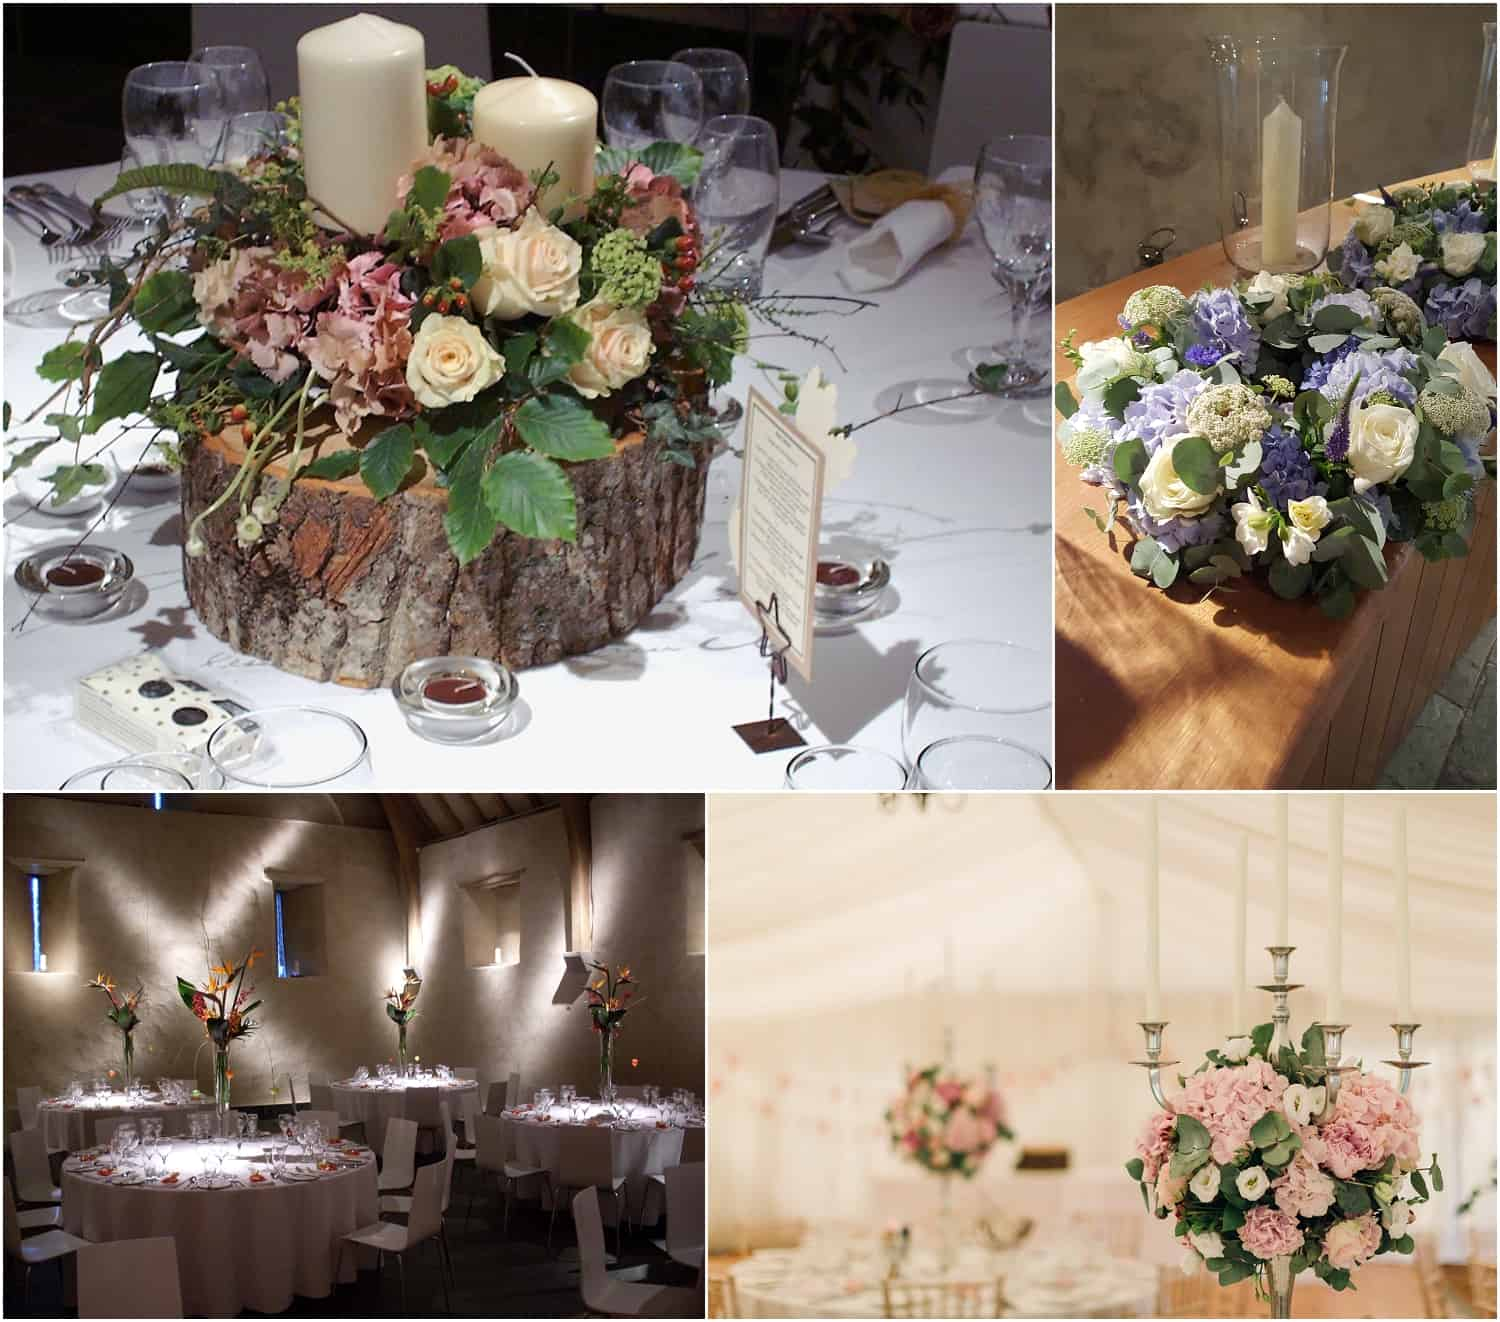 Table centres using flowers, candles and other natural inspirations. By Sarah Pepper